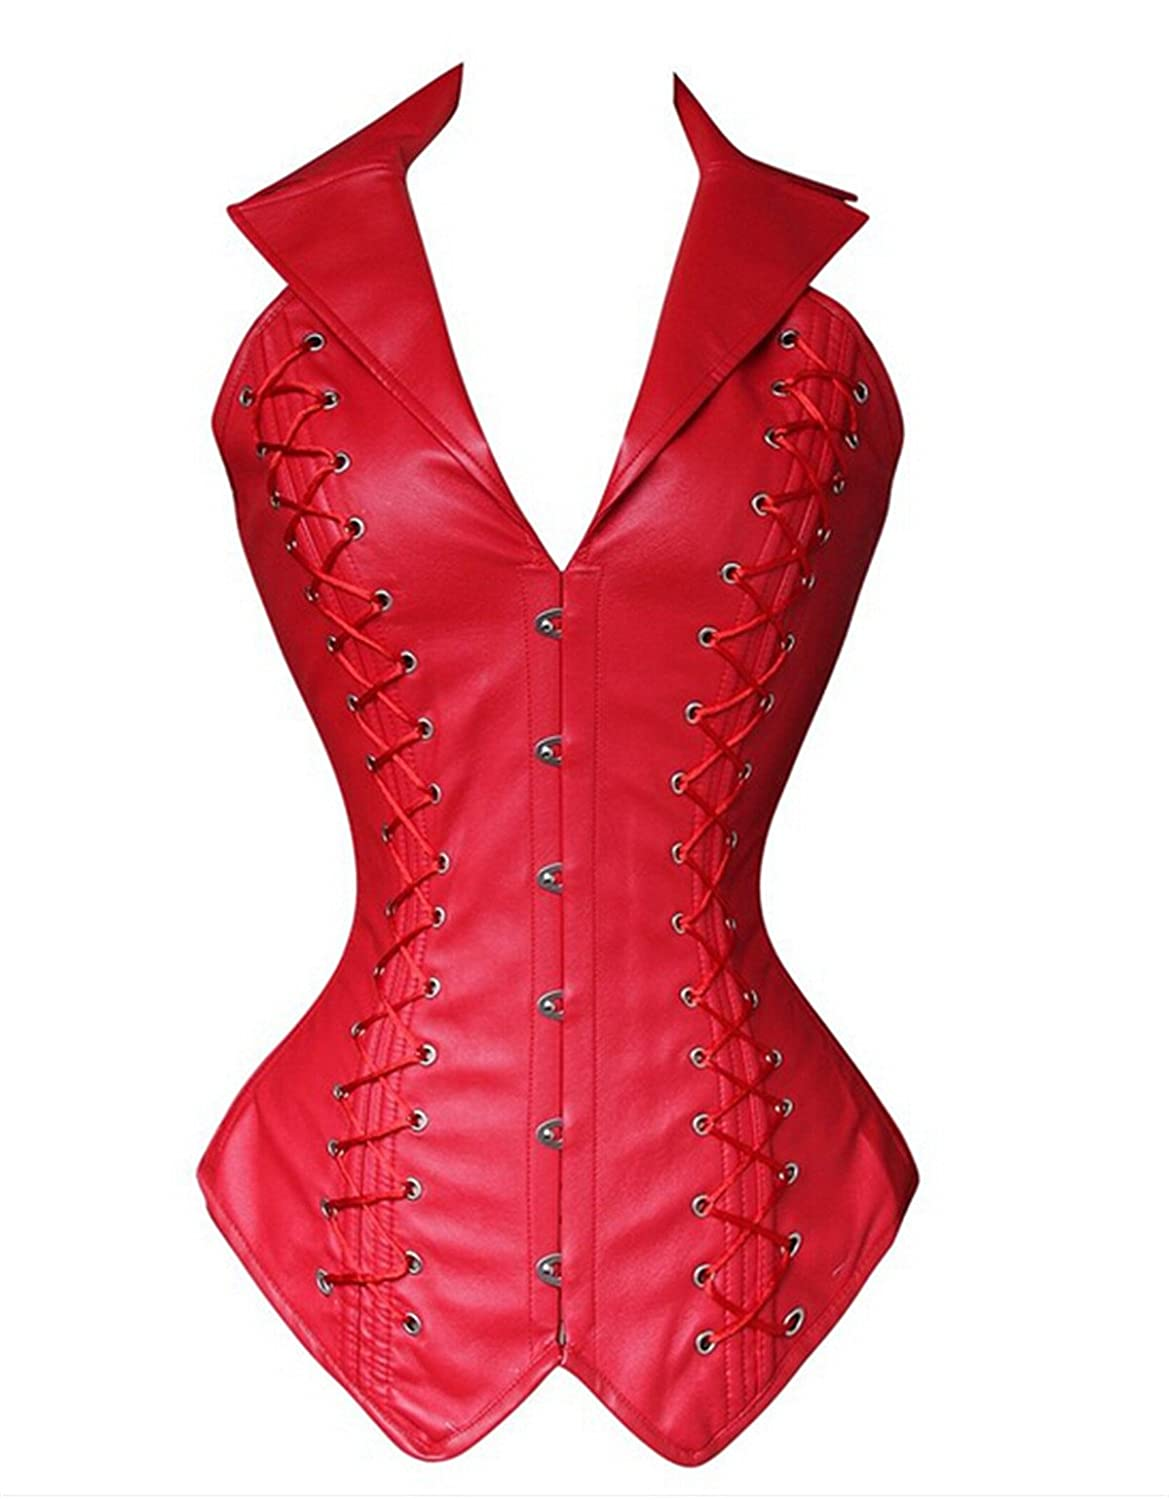 Women's Gothic Faux Leather Spiral Steel Boned Halter Steampunk Corset